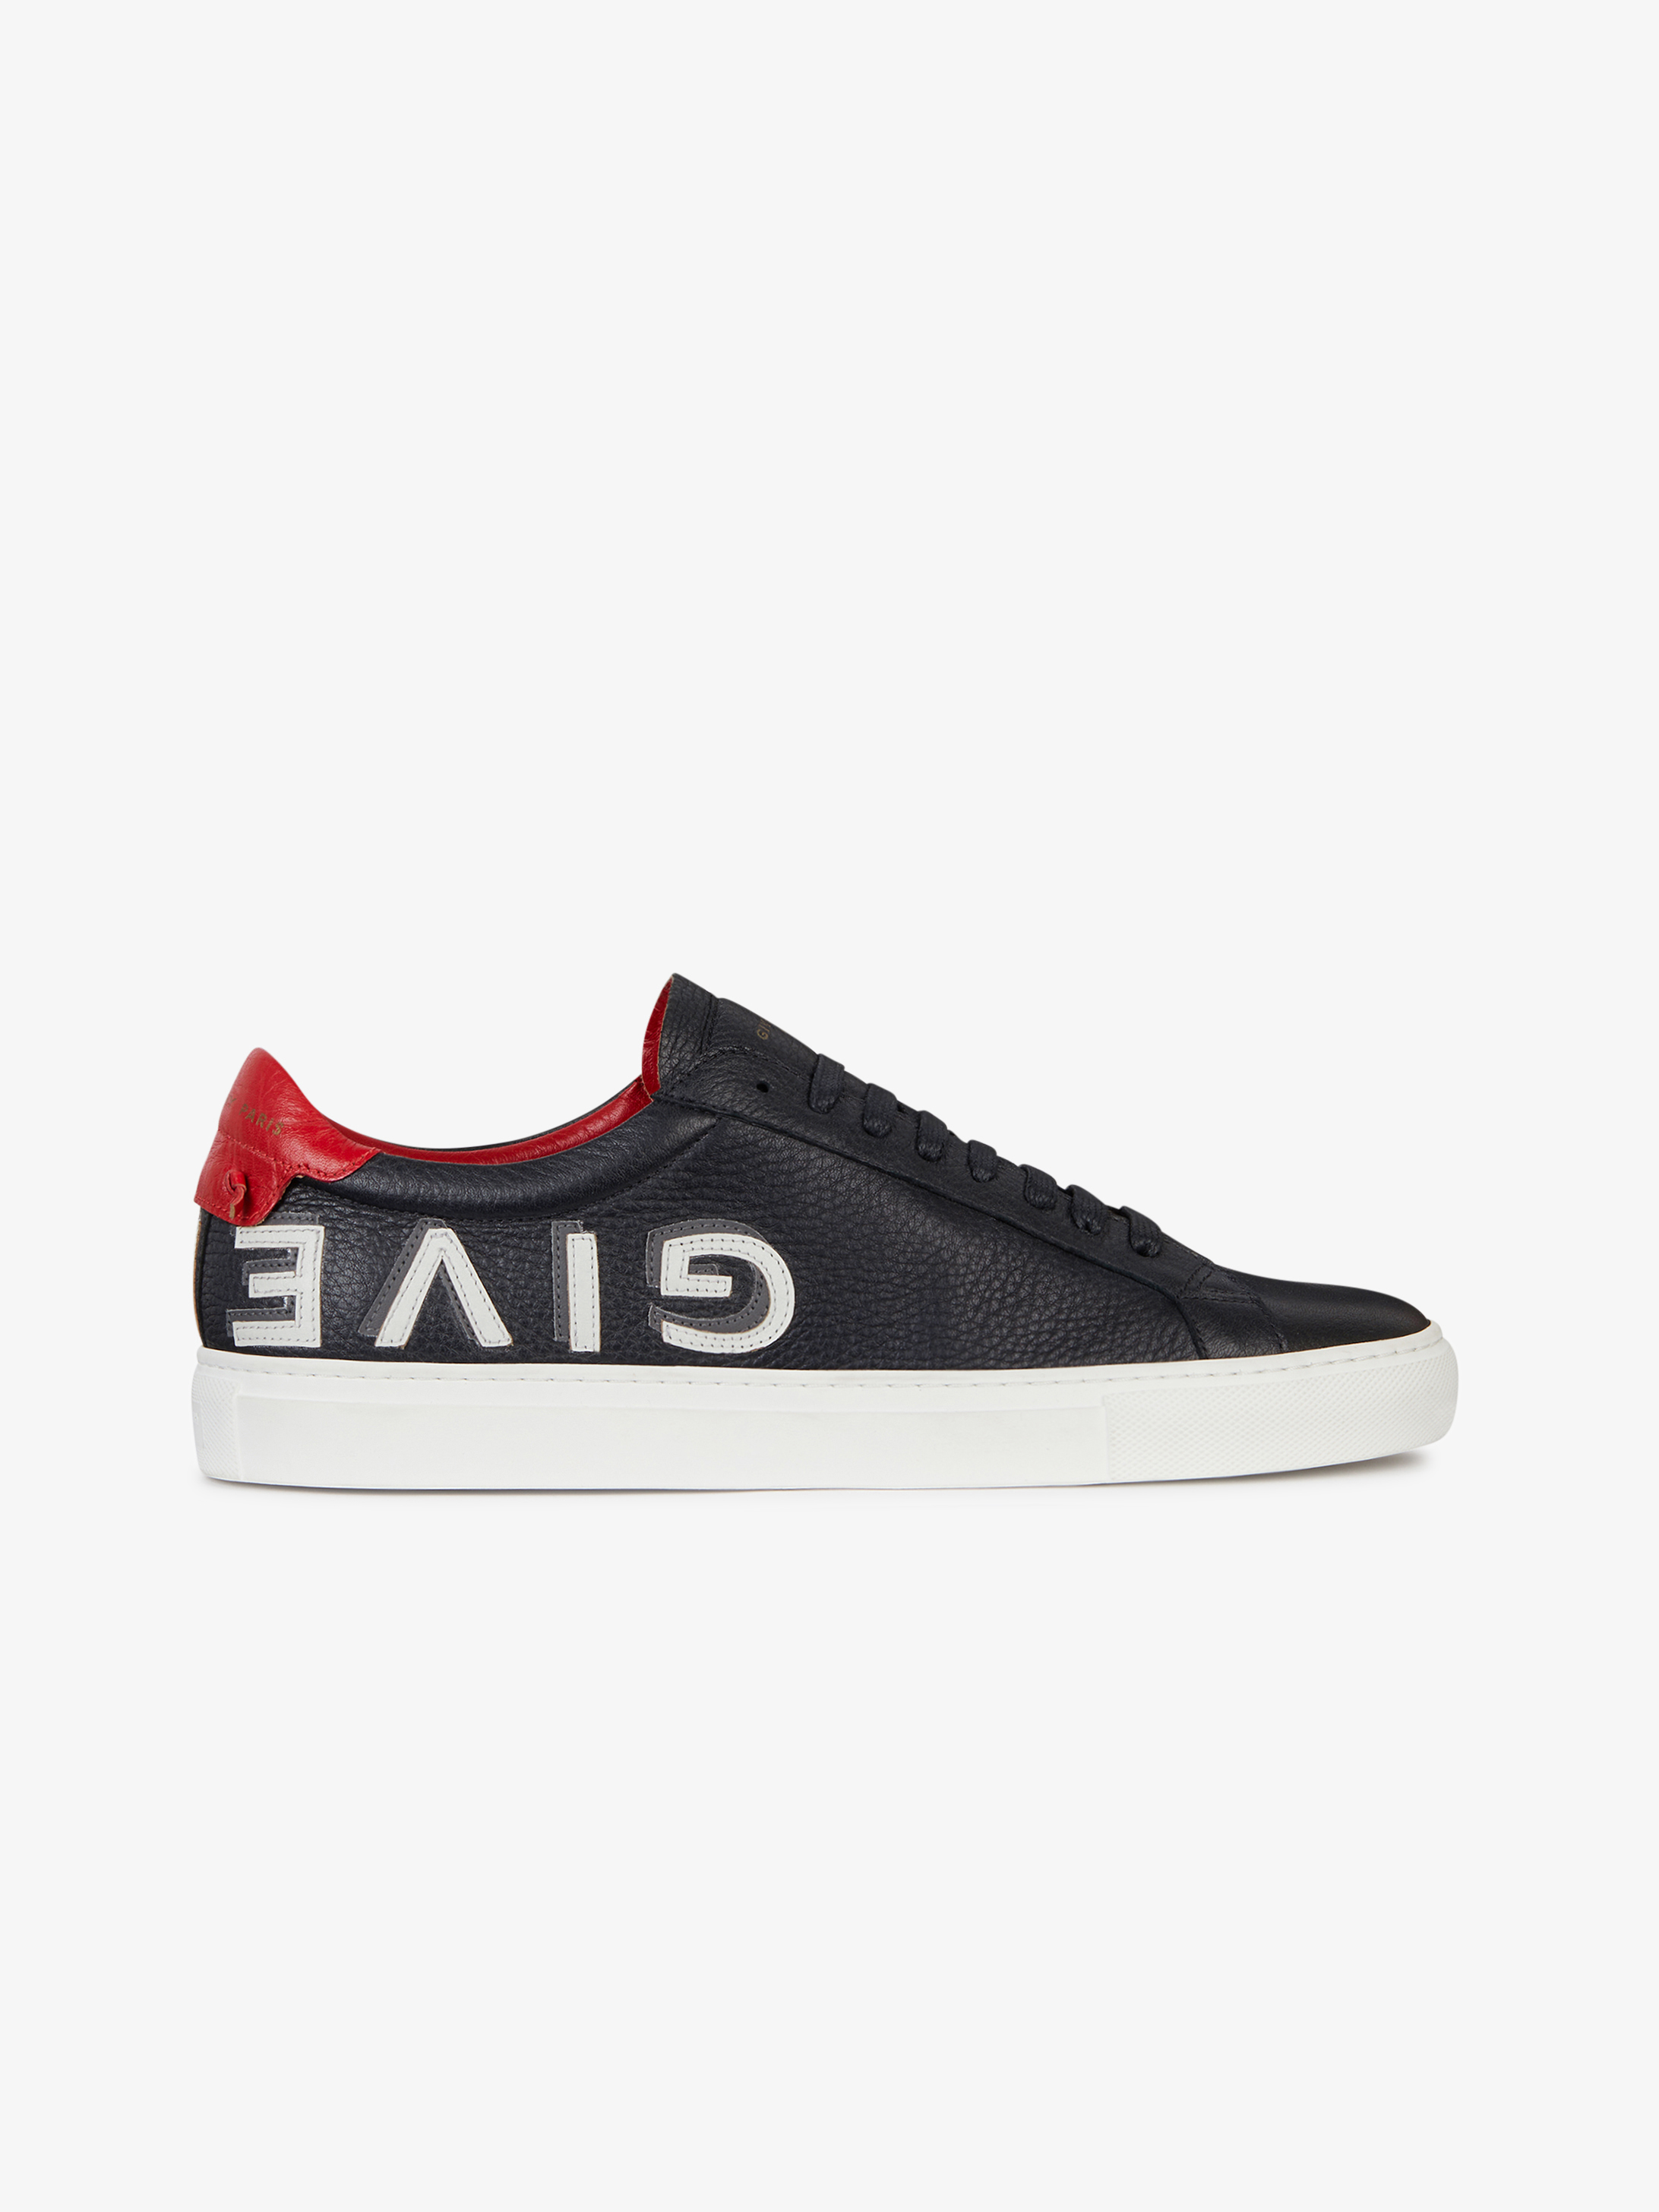 GIVENCHY low sneakers in leather